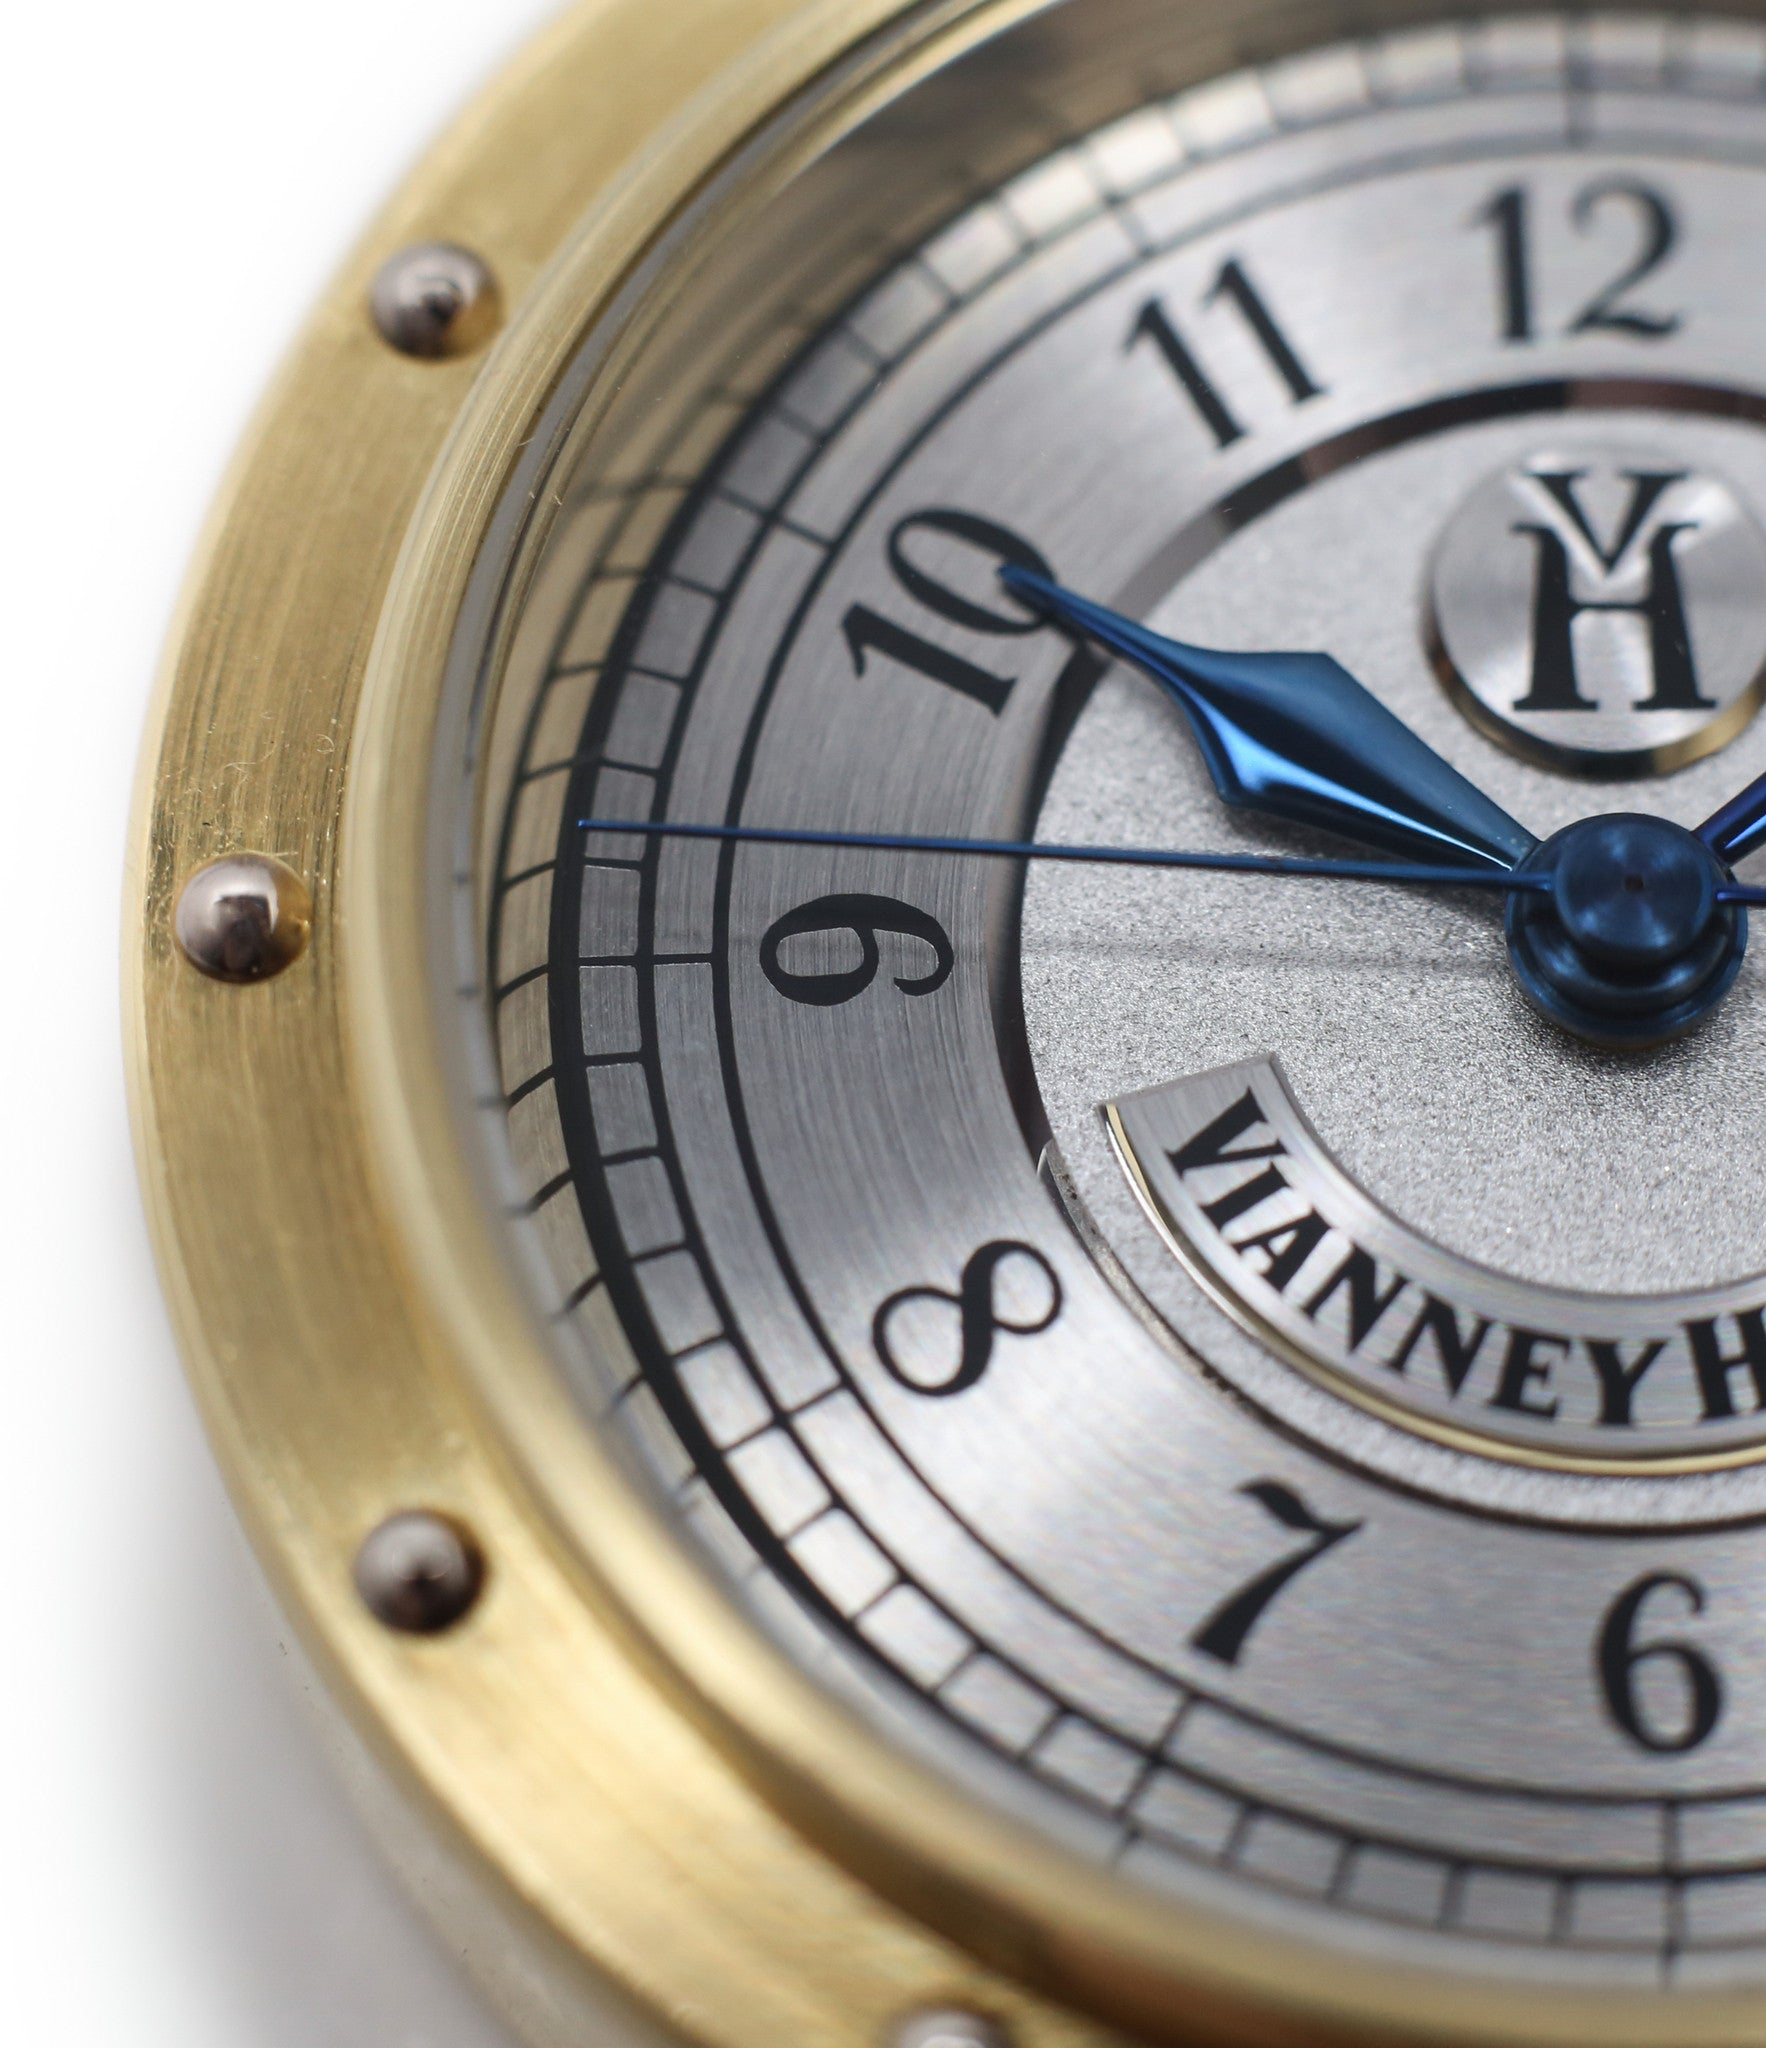 Arabic numerals buy Vianney Halter Classic yellow gold time-only dress watch at A Collected Man the approve seller of independent watchmakers